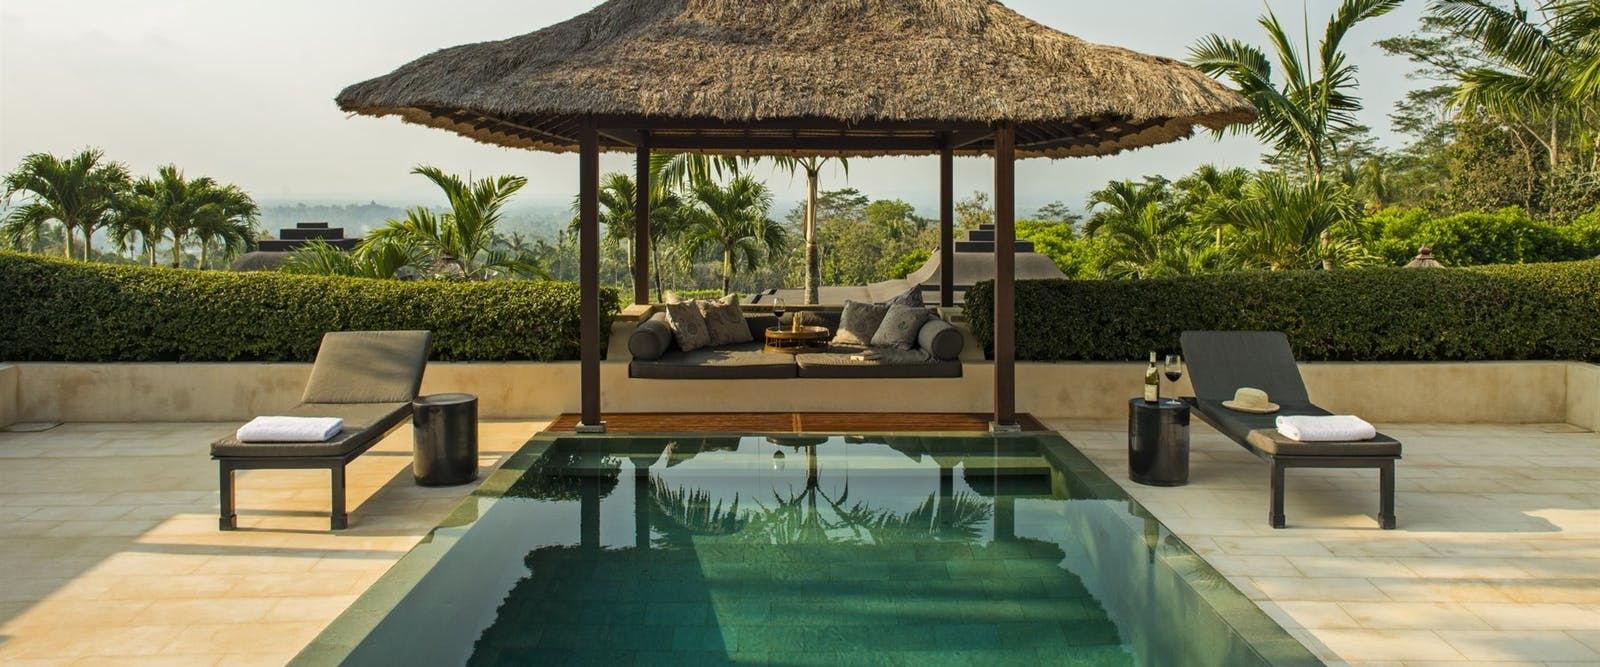 Garden Pool Pavilion at Amanjiwo, Bali